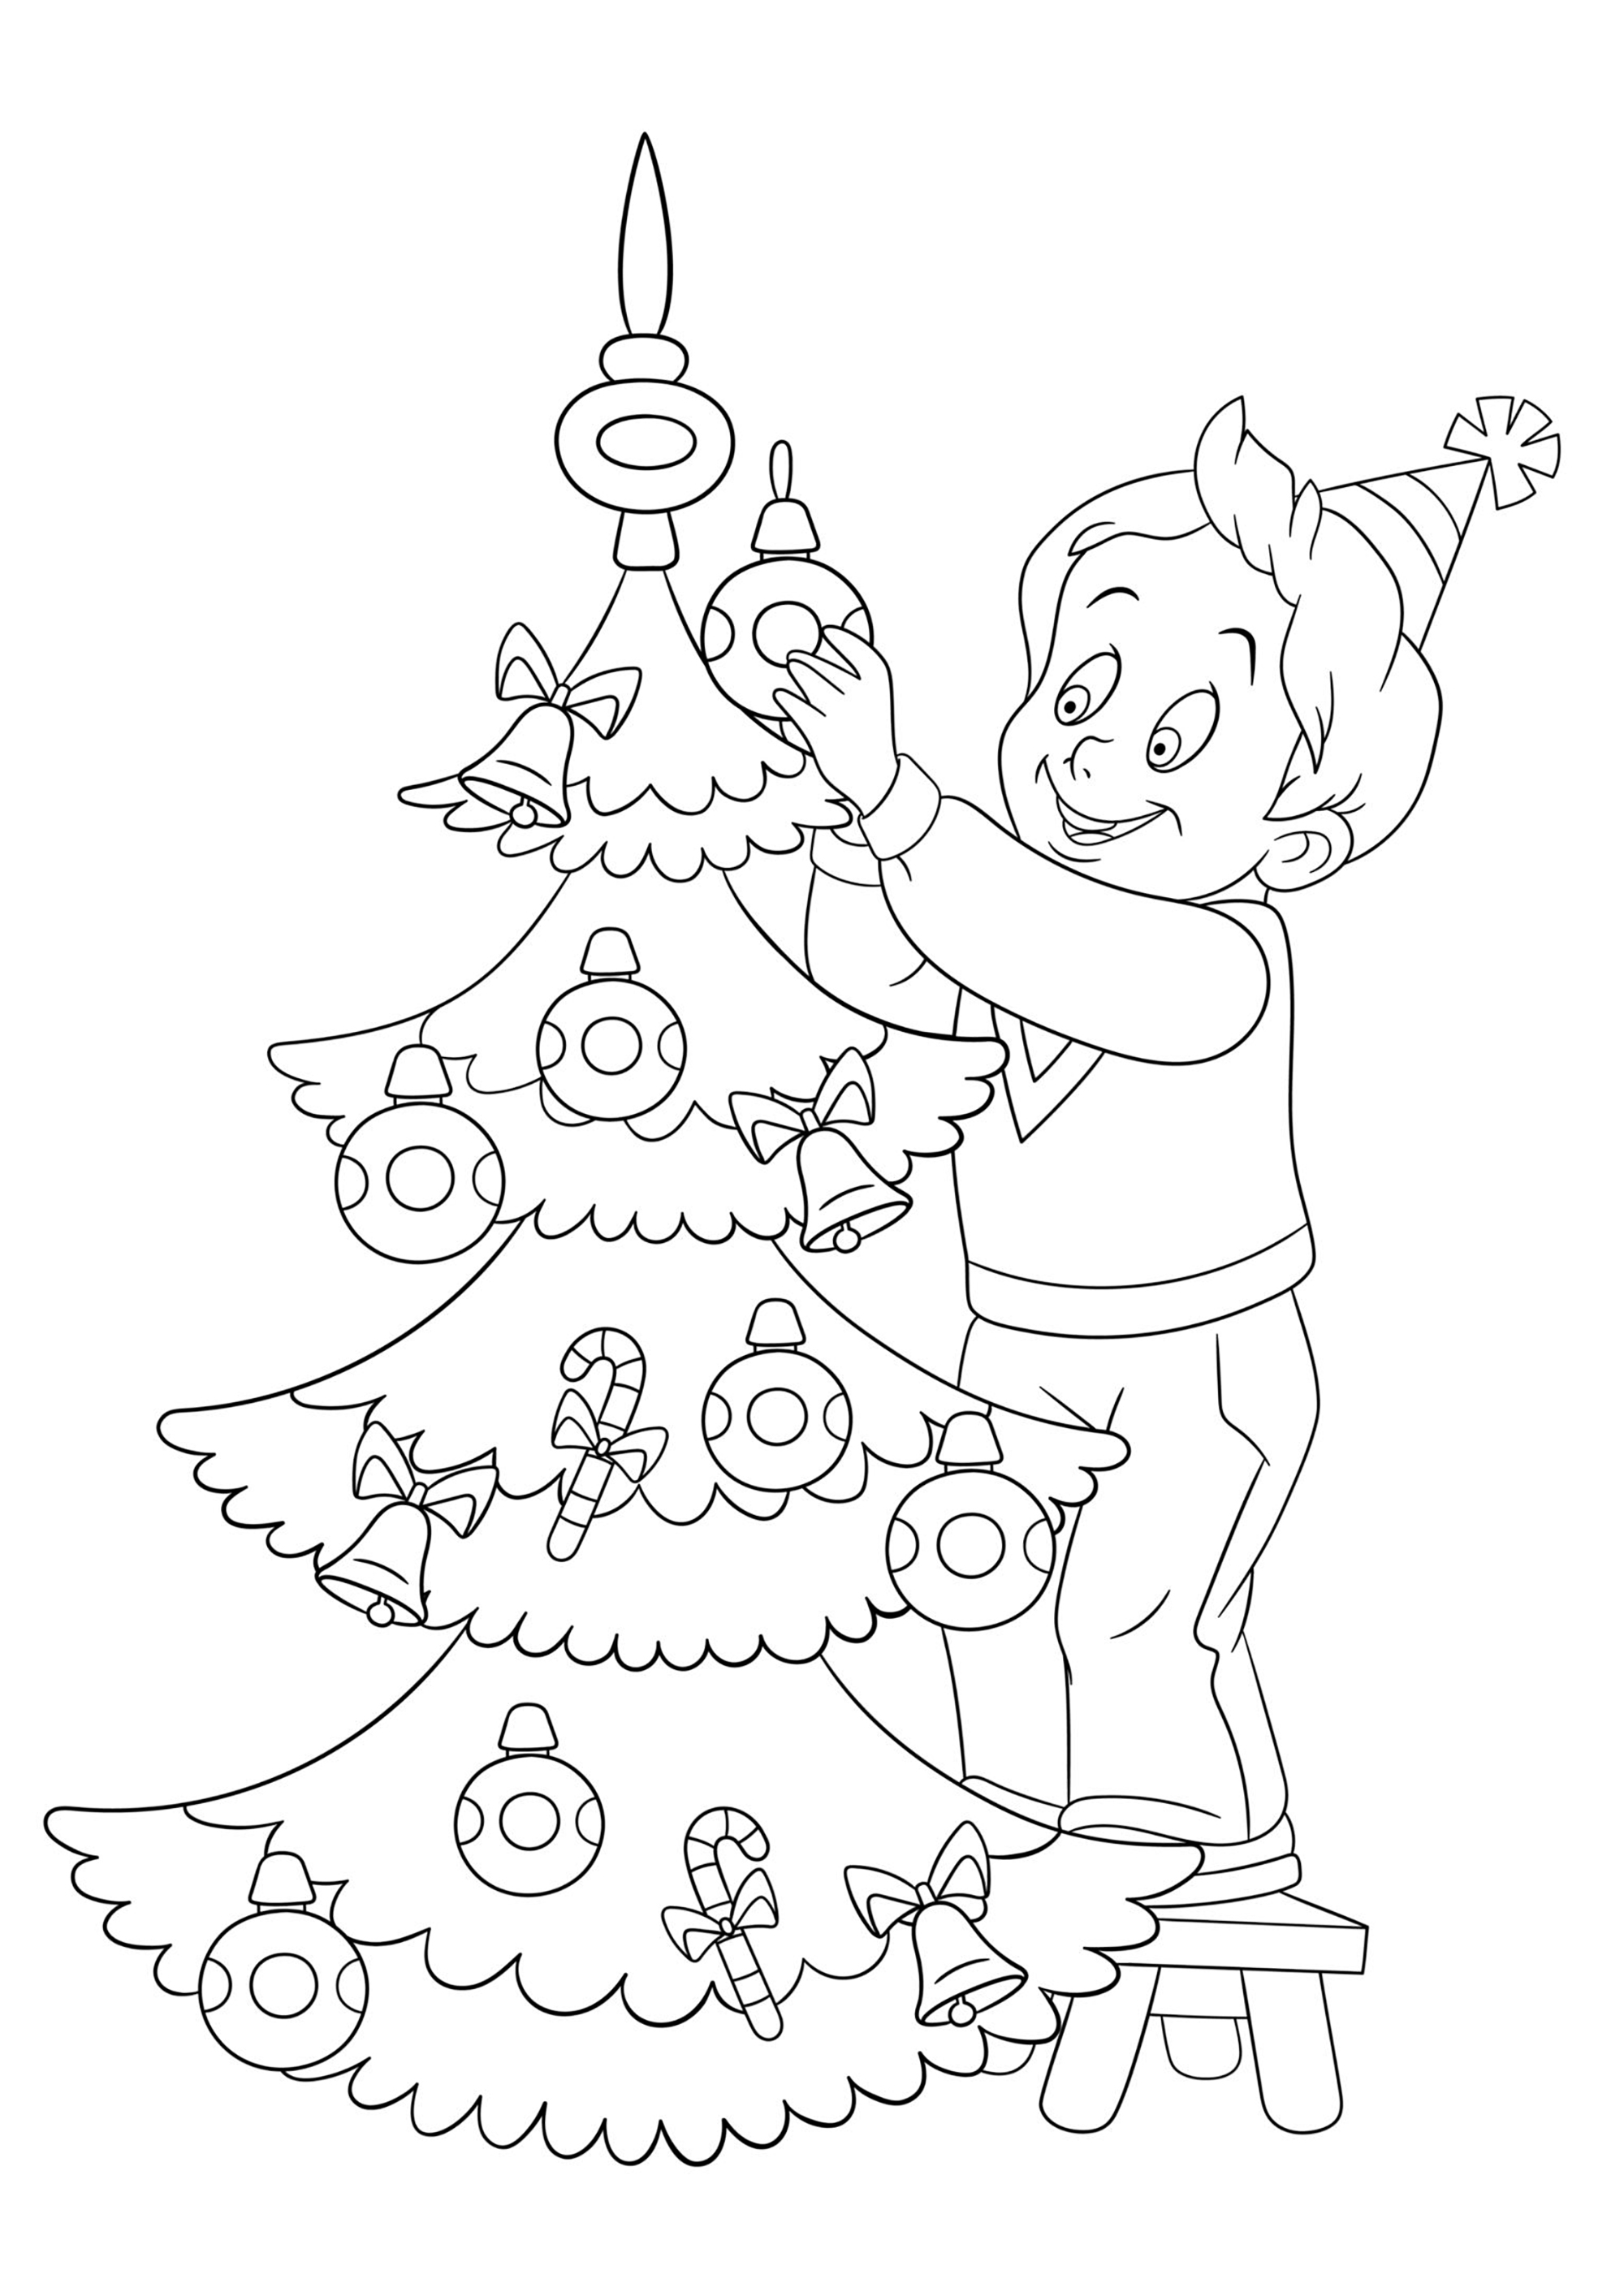 Christmas for children - Christmas Kids Coloring Pages